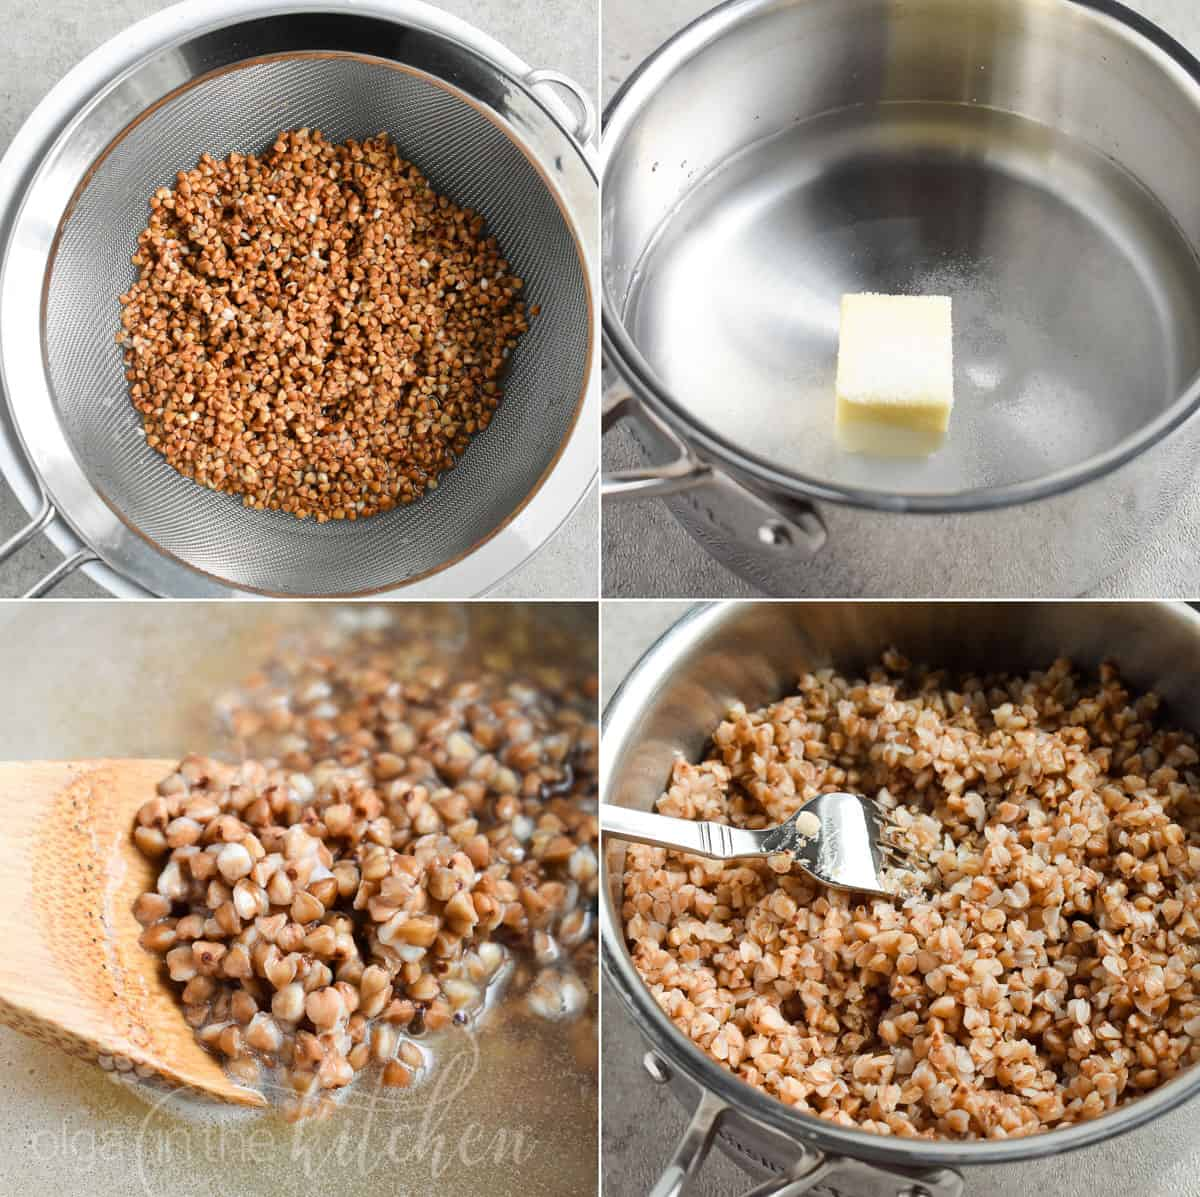 Buckwheat is a healthy, gluten-free seed with a nutty, toasty flavor and soft texture. It's so easy to prepare and inexpensive. Learn How to Cook Buckwheat kasha perfectly every time! #buckwheat #olgainthekitchen #howto #sidedish #healthy #lowcarb